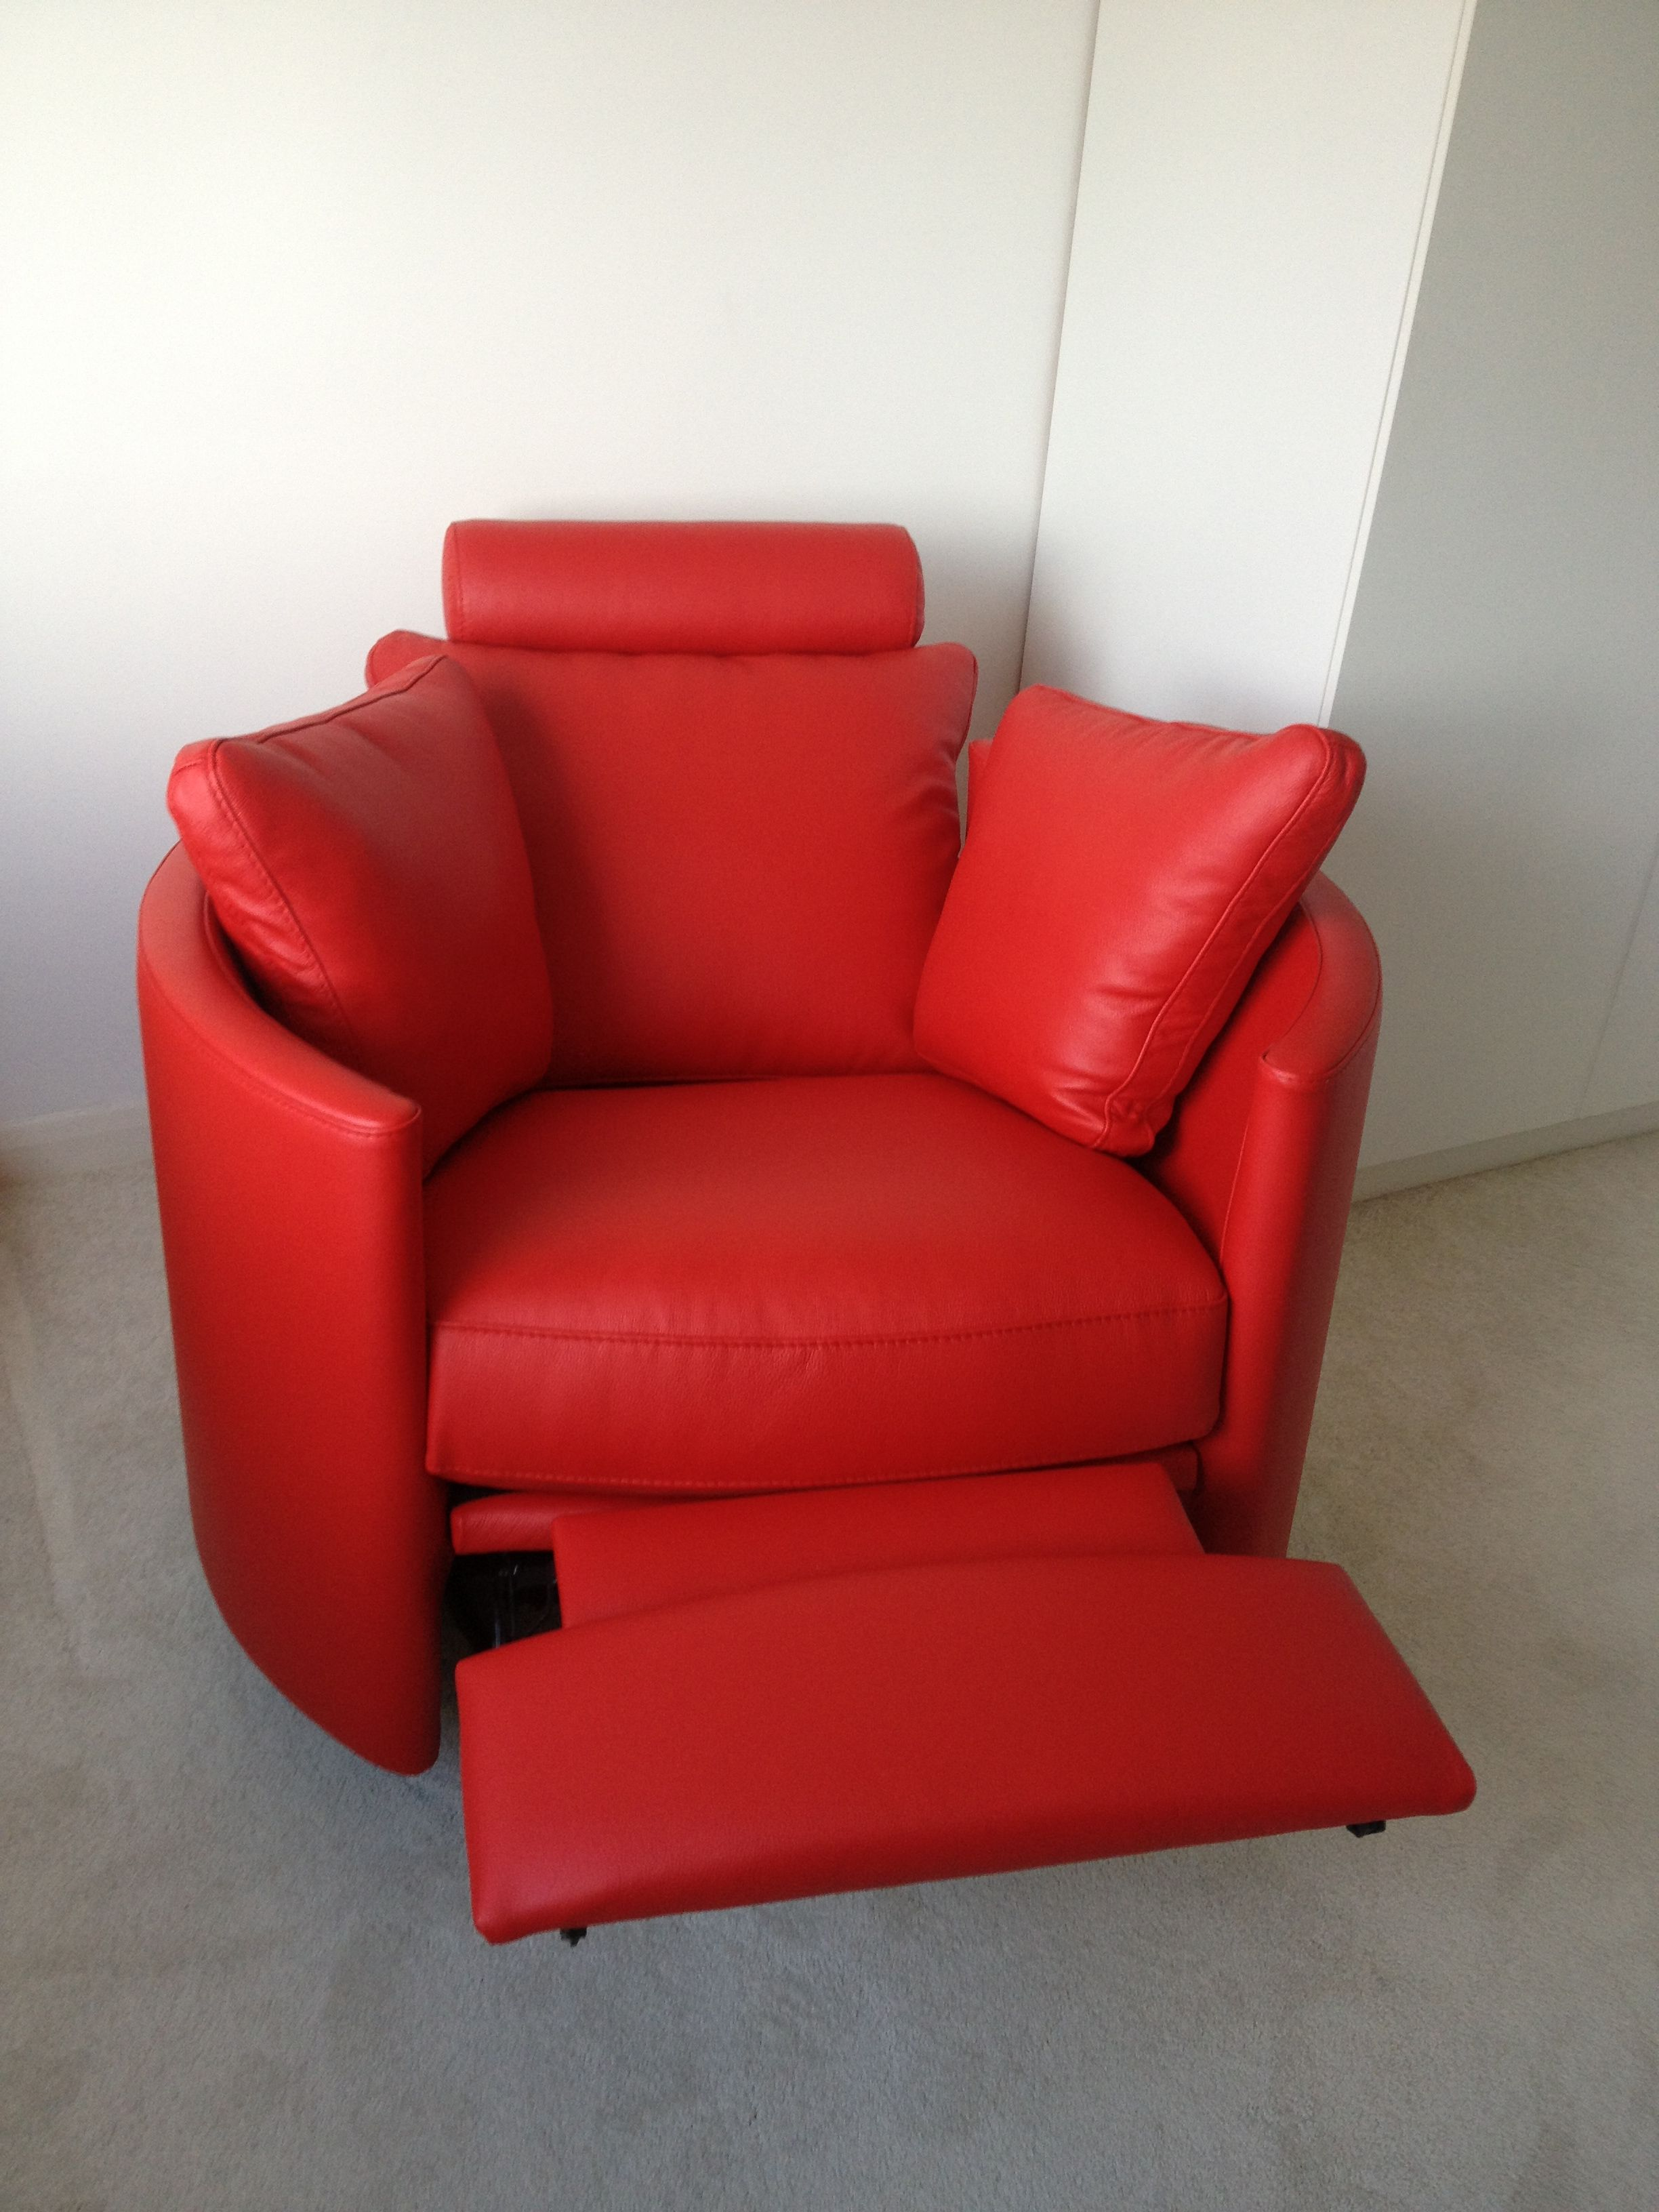 Hot red leather electric contemporary armchair recliner